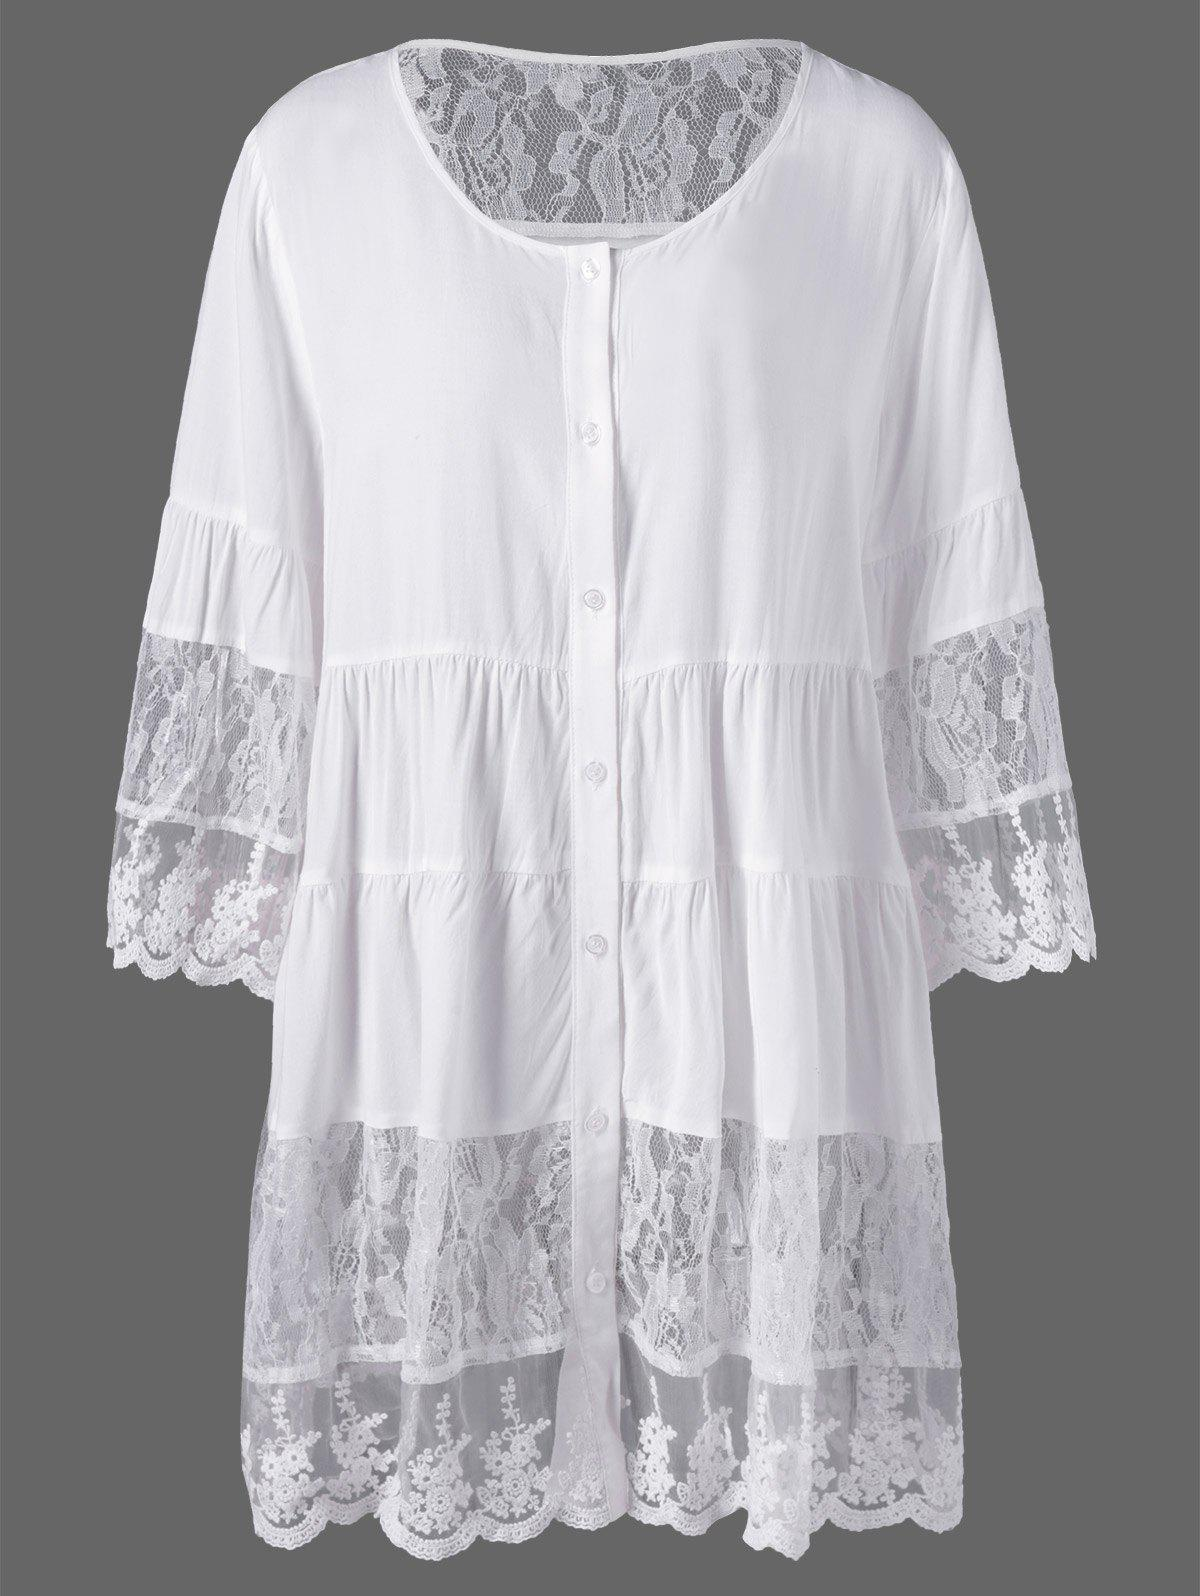 Plus Size Lace Insert Scalloped Button Up BlouseWOMEN<br><br>Size: 2XL; Color: WHITE; Material: Cotton Blends,Polyester; Shirt Length: Long; Sleeve Length: Full; Collar: Scoop Neck; Style: Fashion; Season: Spring,Summer; Embellishment: Lace; Pattern Type: Solid; Weight: 0.3000kg; Package Contents: 1 x Blouse;